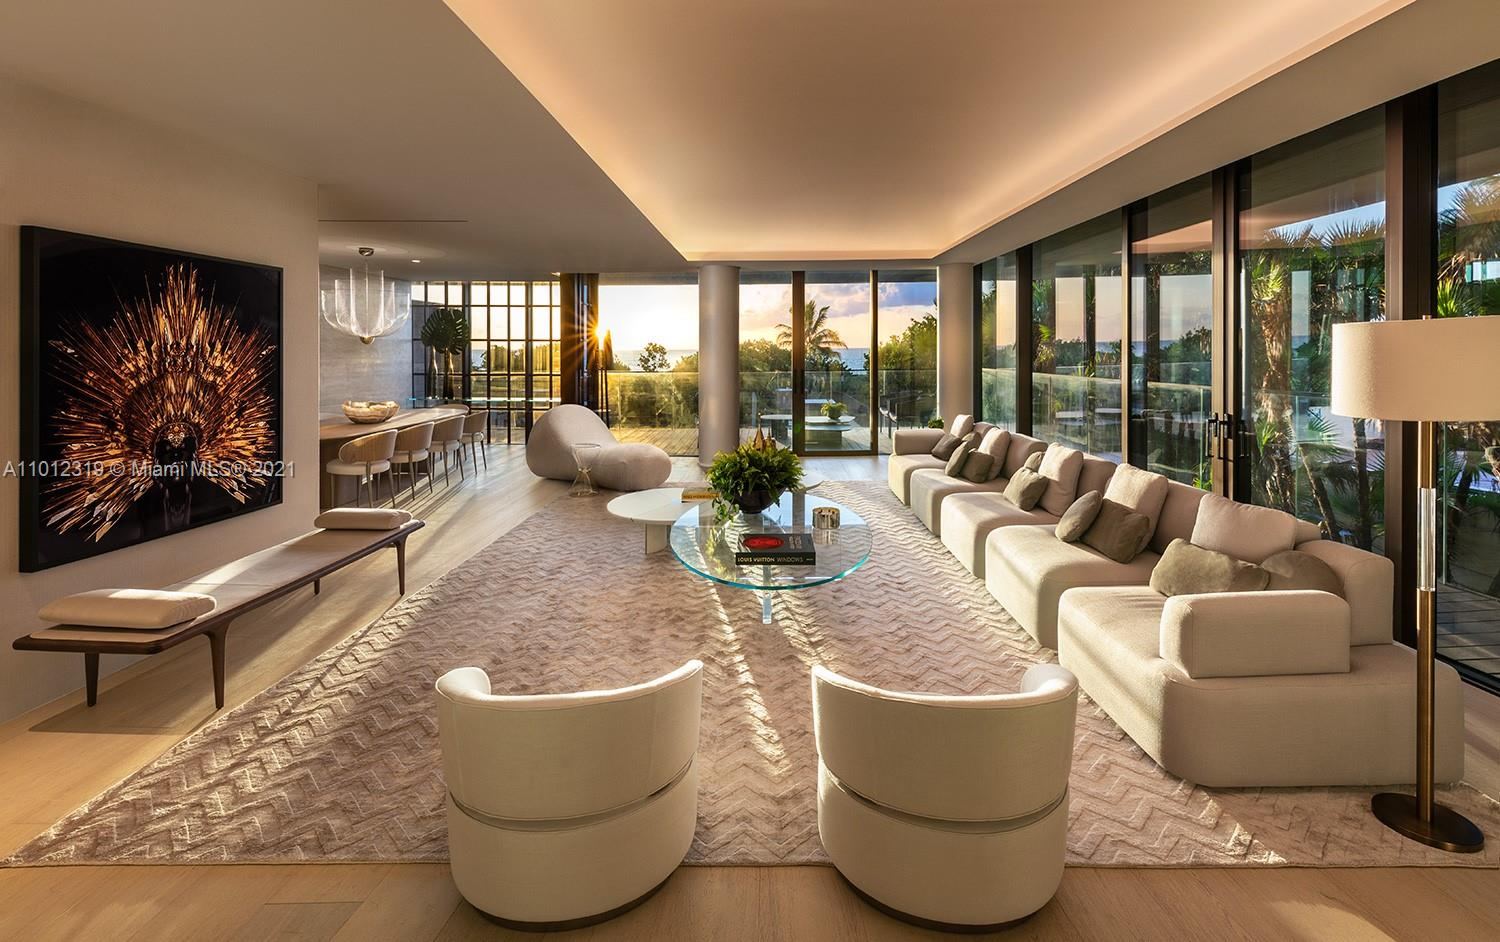 Residence 201 lives like a beach home within ARTE. This two-floor flow through grand estate-sized beach villa boasts gracious living areas and expansive deep terraces with direct ocean and sunset views. Residence 201 features private elevator finger recognition entry, two gourmet chef-style kitchens with gas range, private spiral, stair case leading directly to Spa amenities and beach. Arte is a boutique collection of 16 oceanfront residences by Citterio & Viel in collaboration with Kobi Karp. Full service building with rooftop tennis court, outdoor and heated indoor pools, children's play room and direct beach access. Please note photography represents model unit 202. Residence offers 6982 SF interior with expansive terraces offering 1488 SF Ex. This residence is shown By Appointment Only